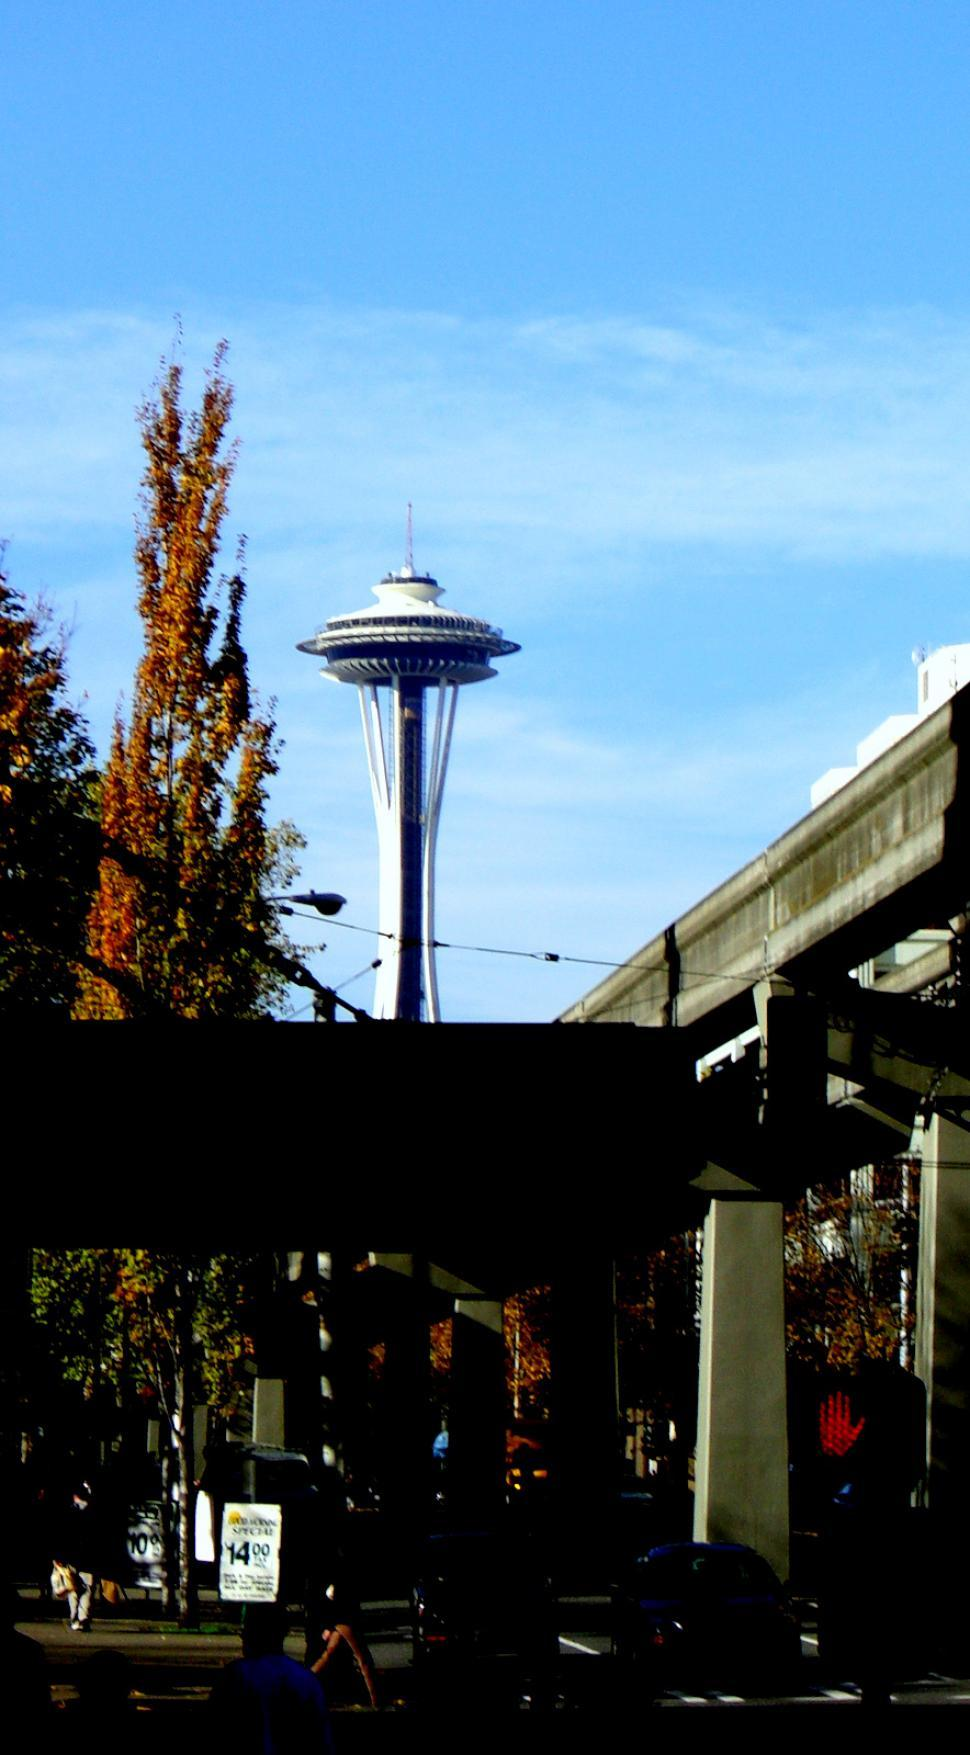 Free image of Space Needle in the distance from my trip to Seattle last year